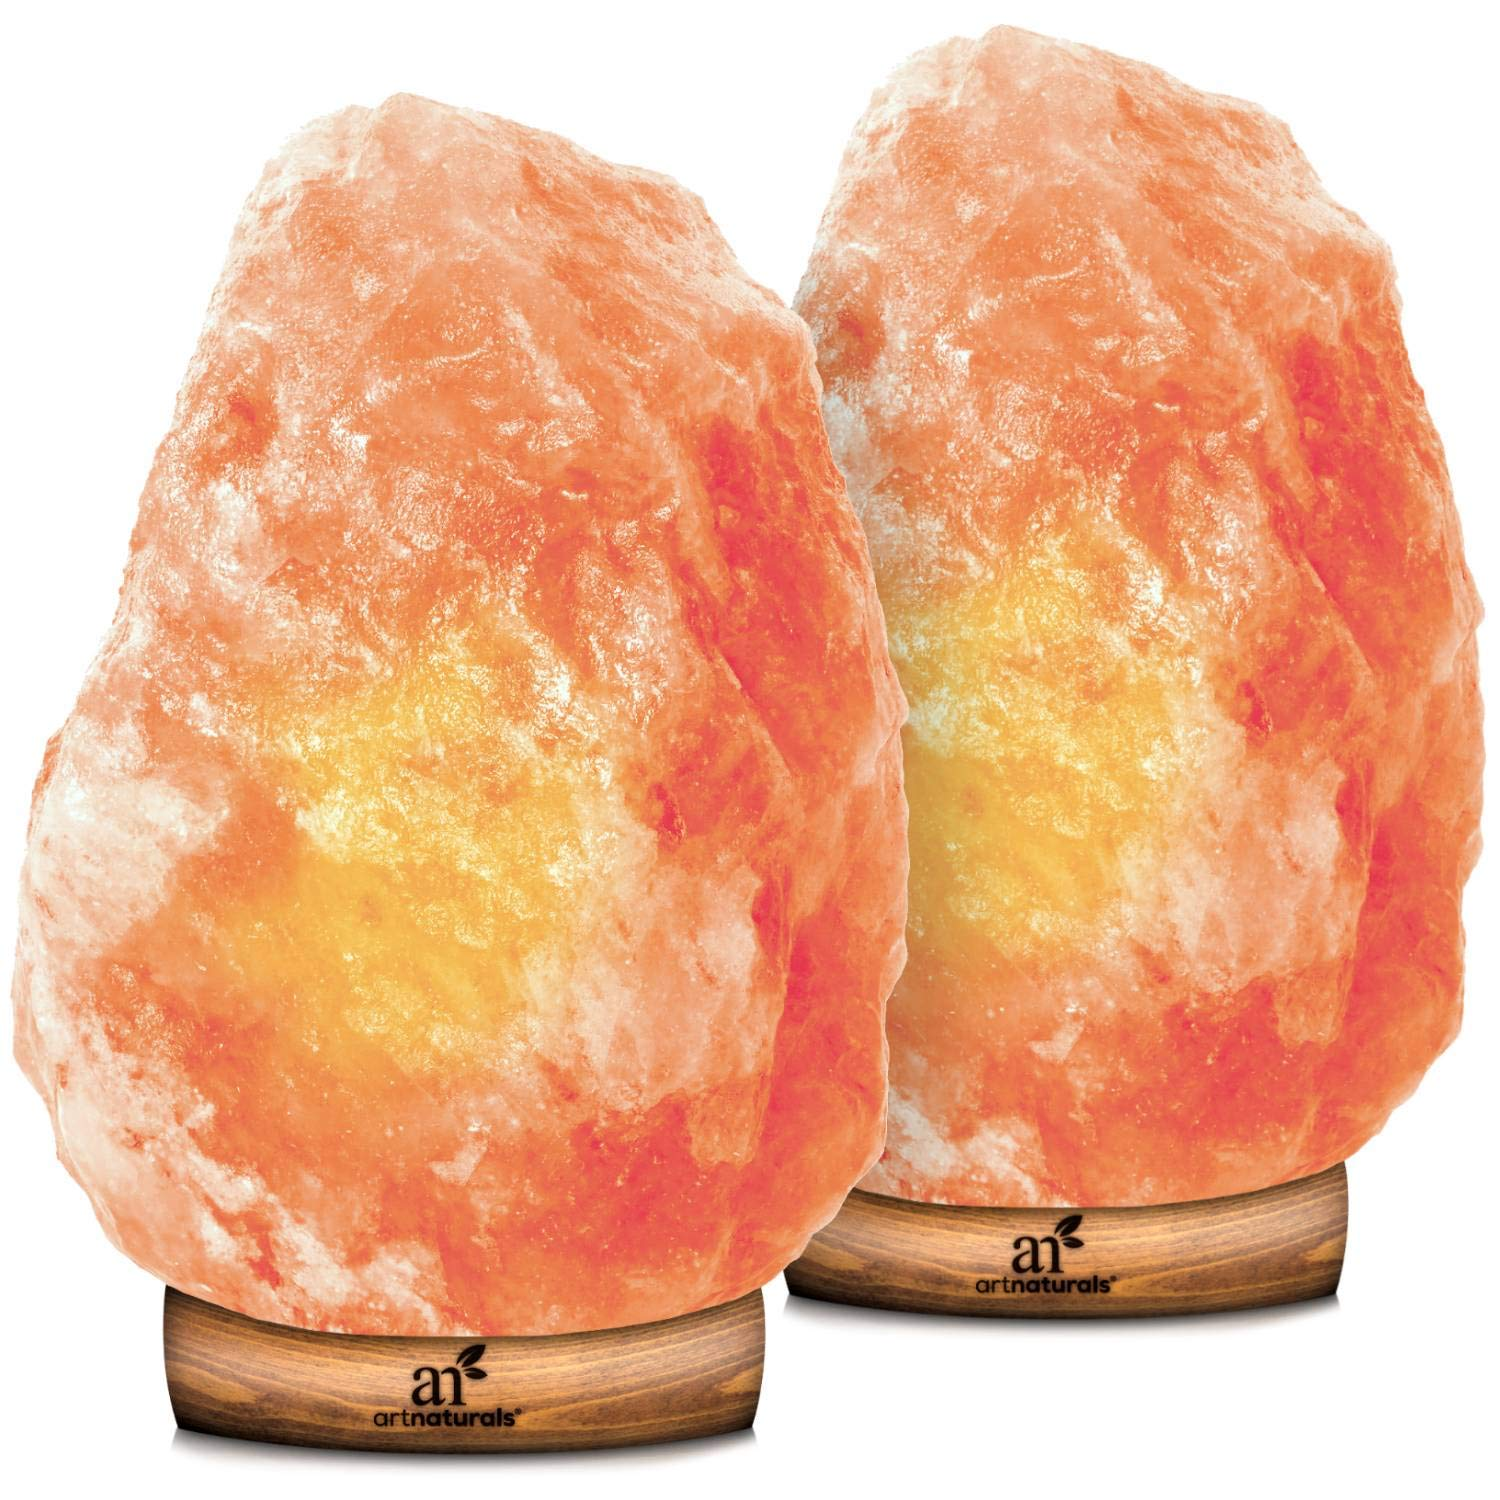 ArtNaturals Himalayan Rock Salt Lamp - Hand Carved Pink Crystal from Pure Salt in the Himalayas - for Rest, Relaxation and Energy - Real Wooden Base by ArtNaturals (Image #1)